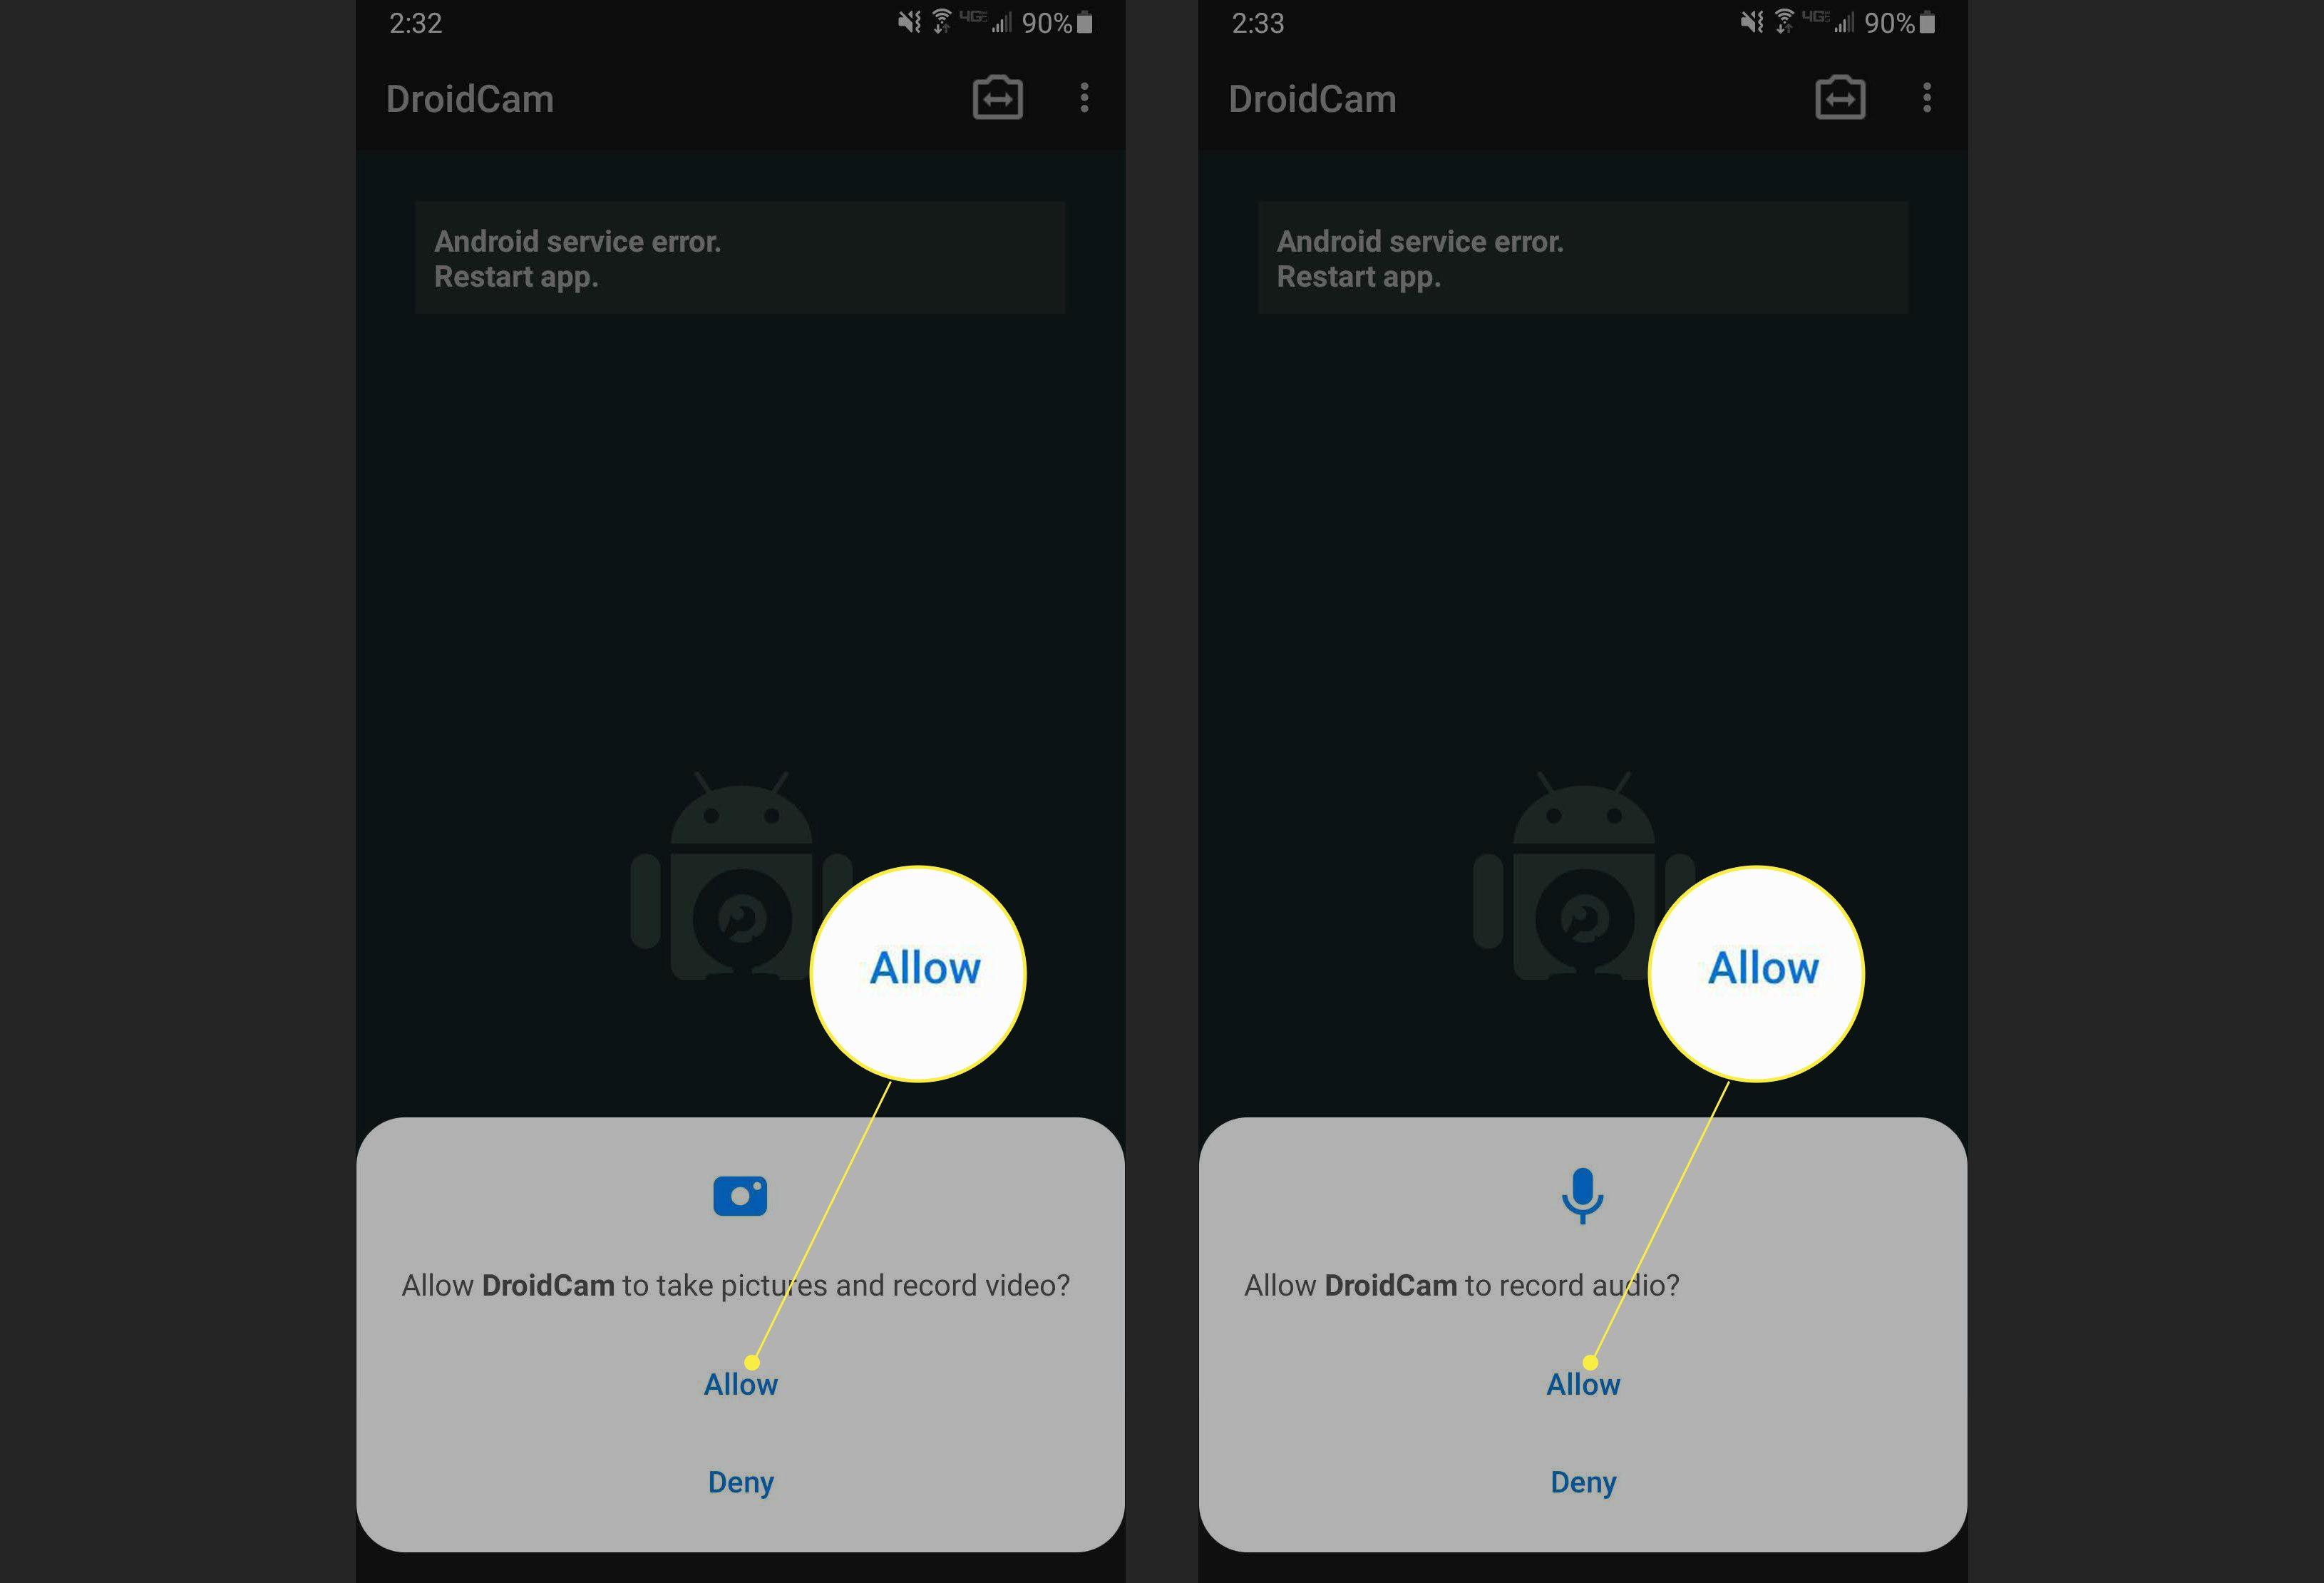 Steps to give DroidCam the correct permissions to access your camera with Allow highlighted